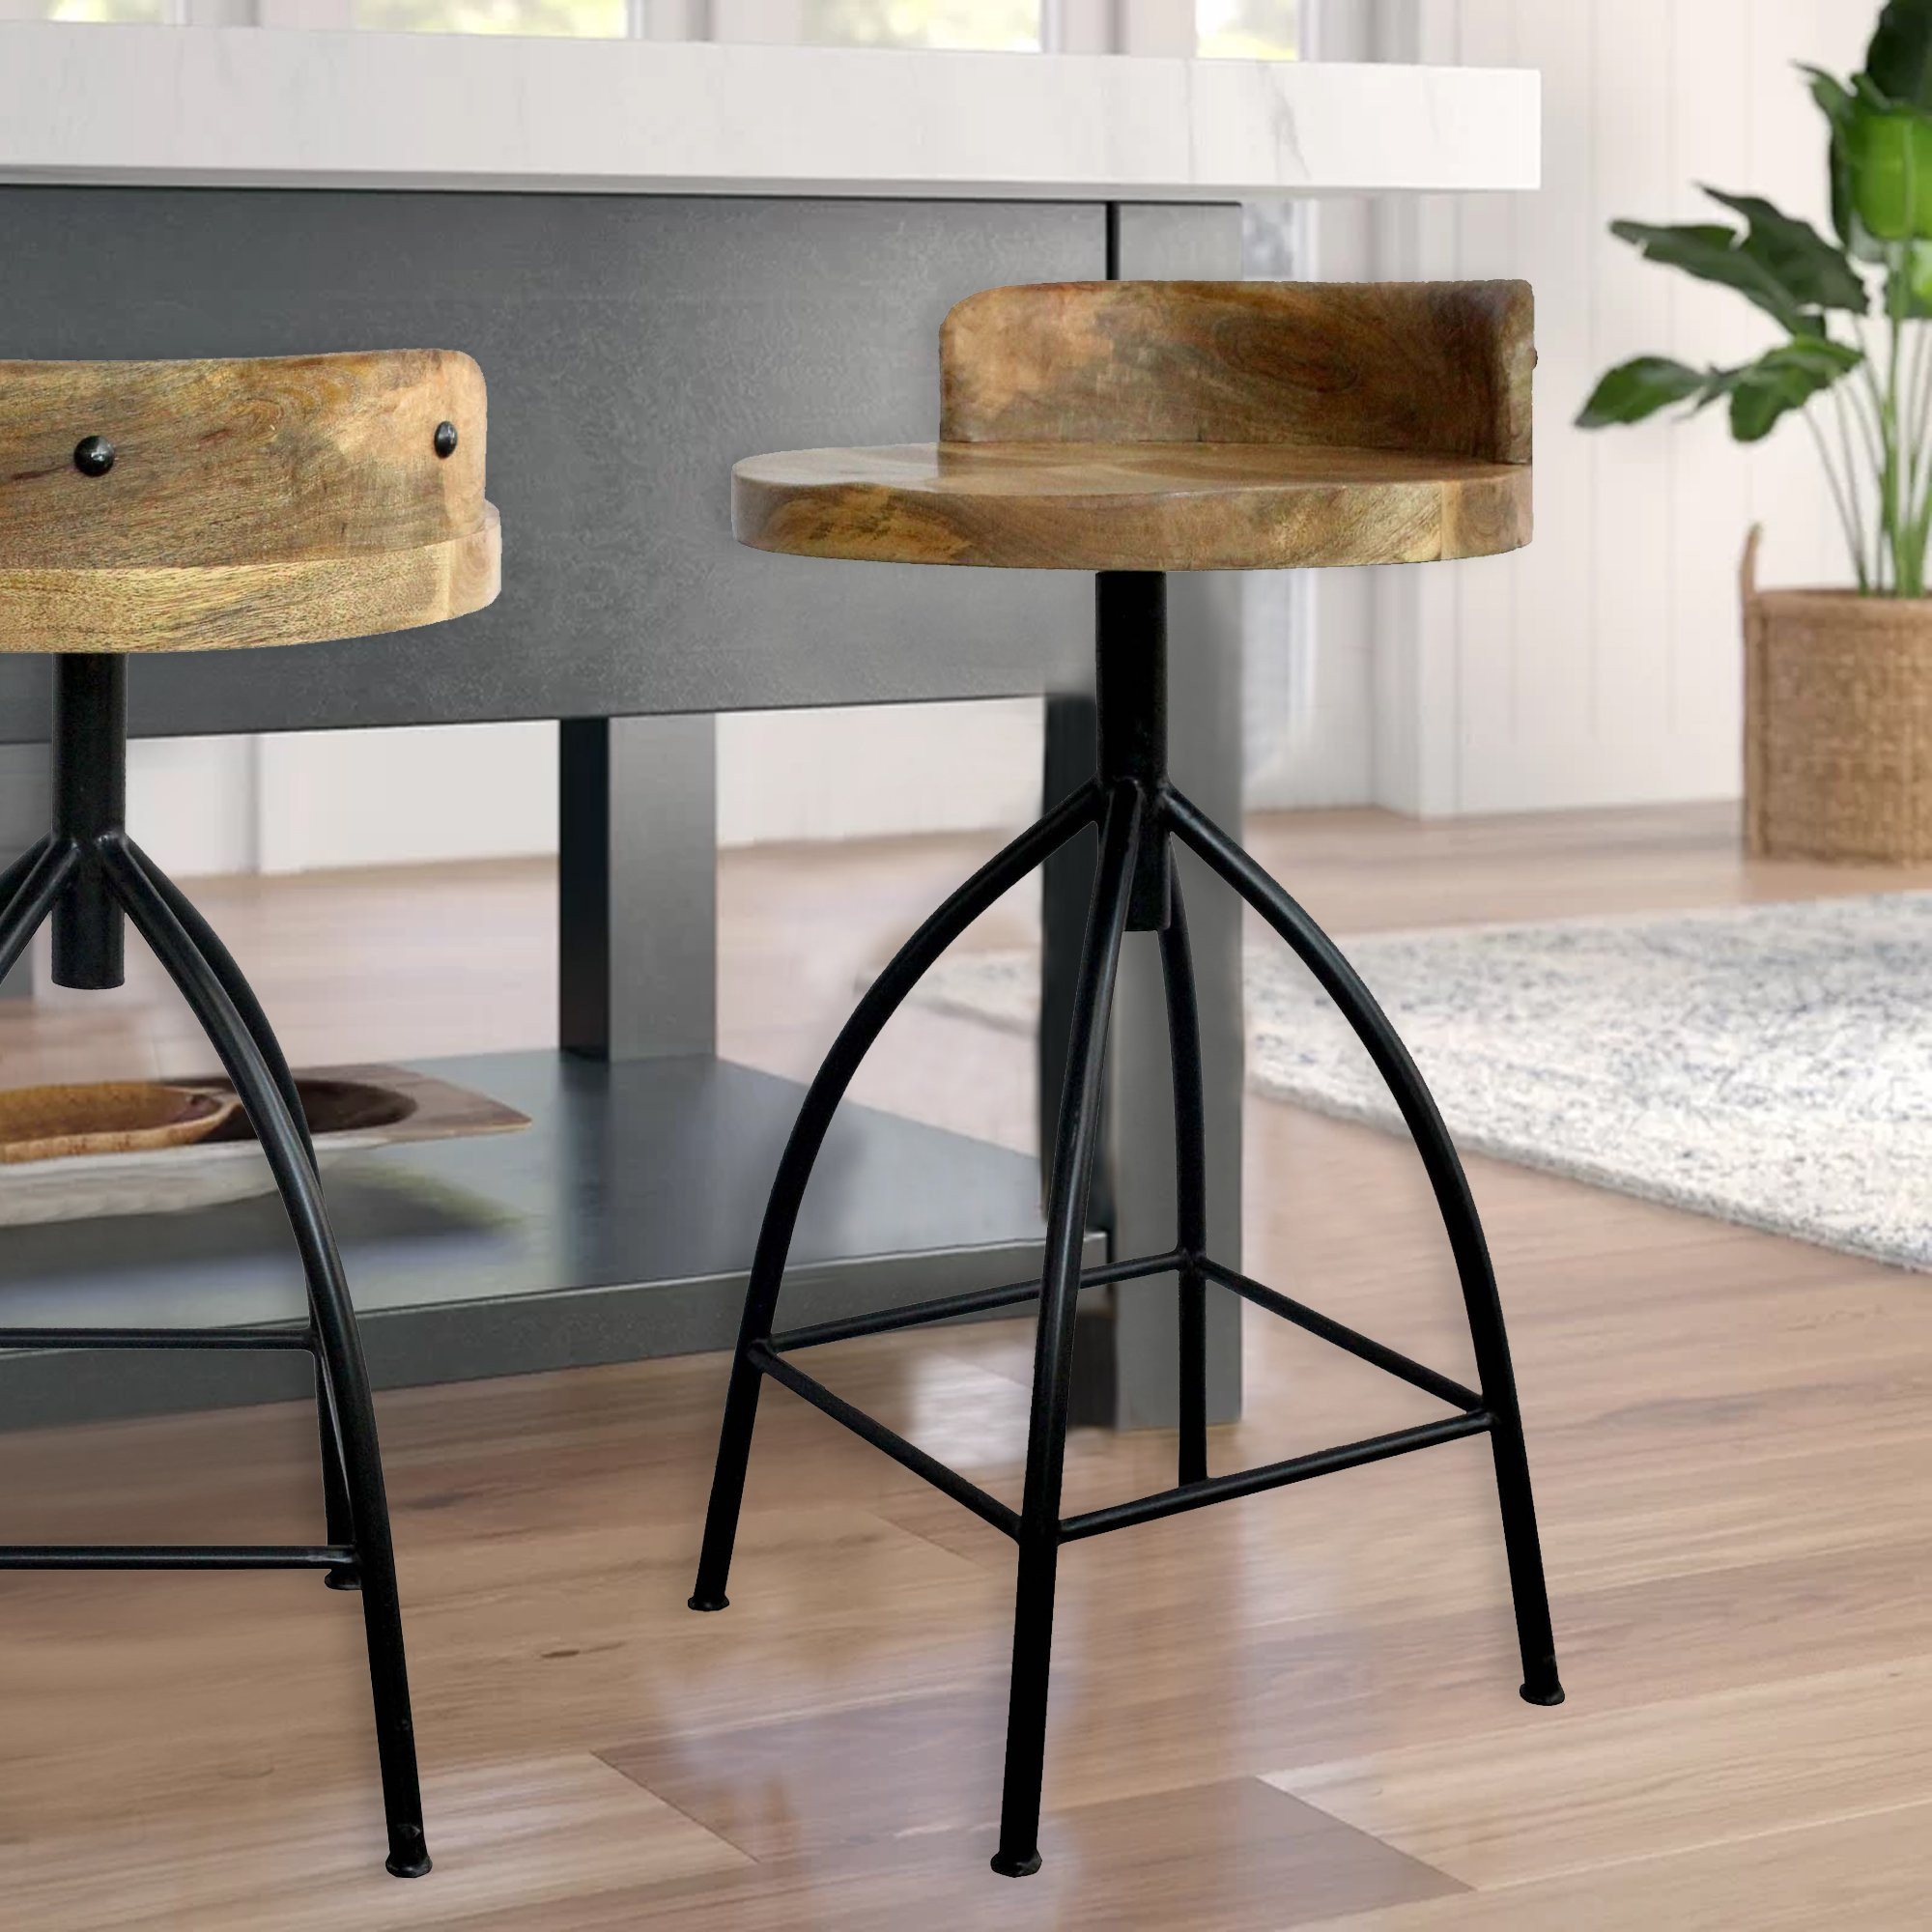 28 Industrial Style Adjustable Counter Stool Black And Brown By The Urban Port Bar Stools Counter Height Stools Counter Height Bar Stools